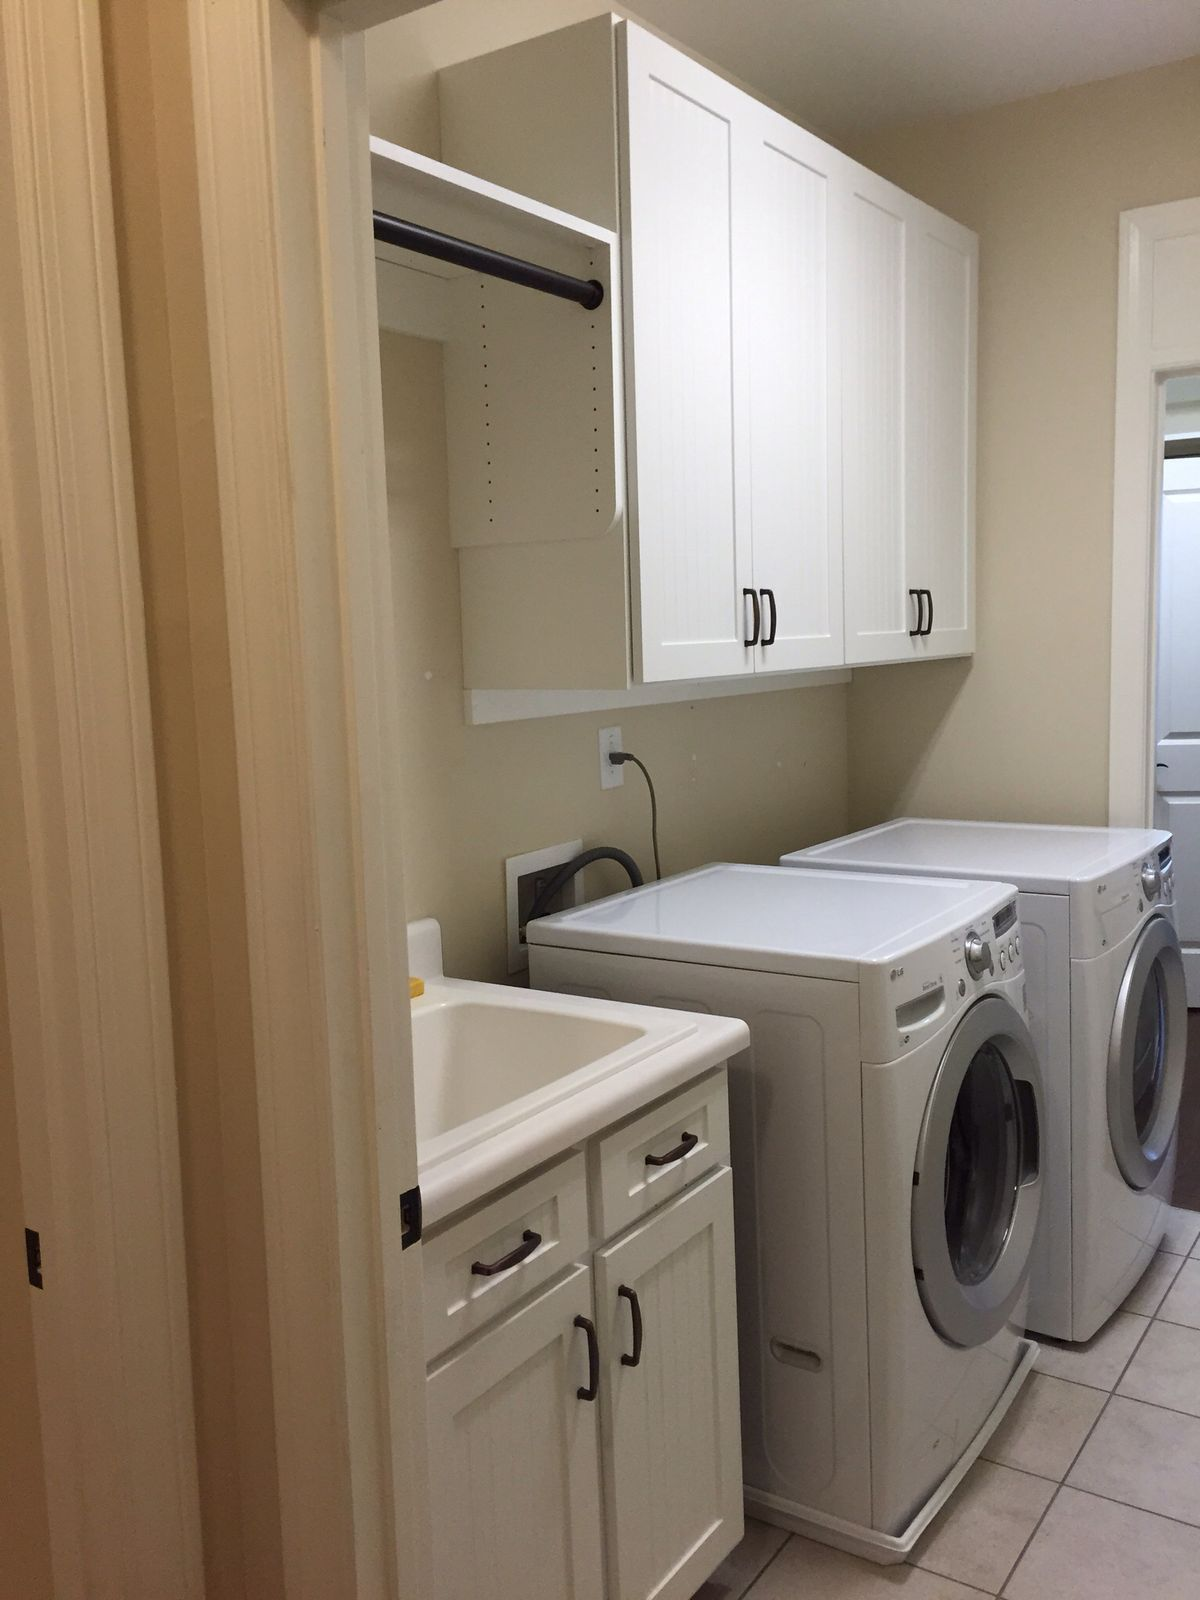 Explore Laundry Cabinets, Laundry Rooms, And More